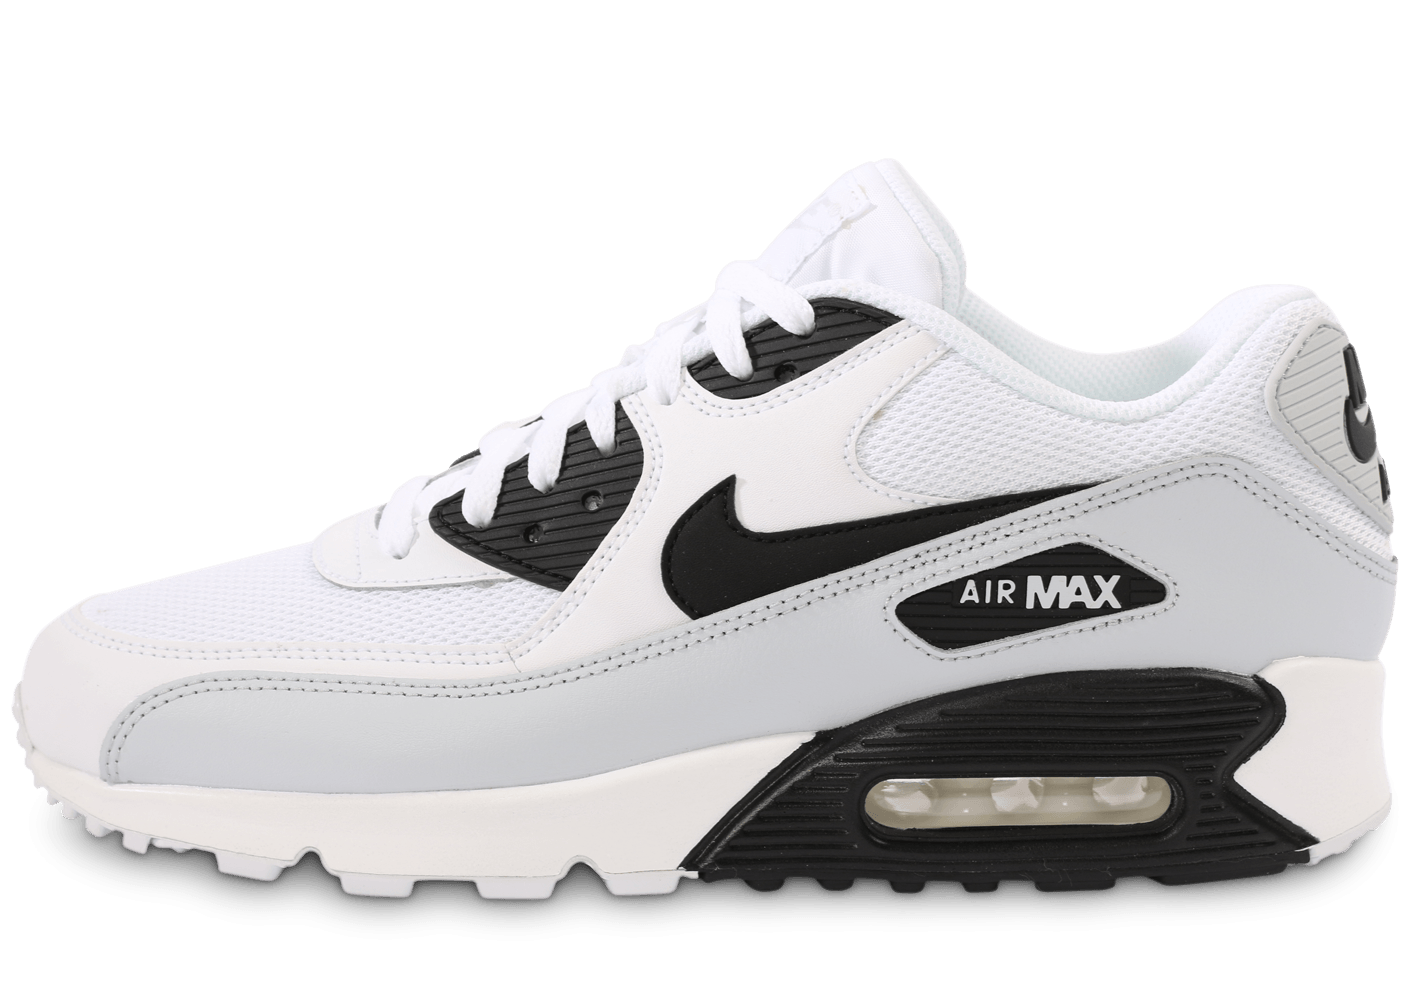 Nike Air Max 90 or femme Chaussures Baskets femme Chausport